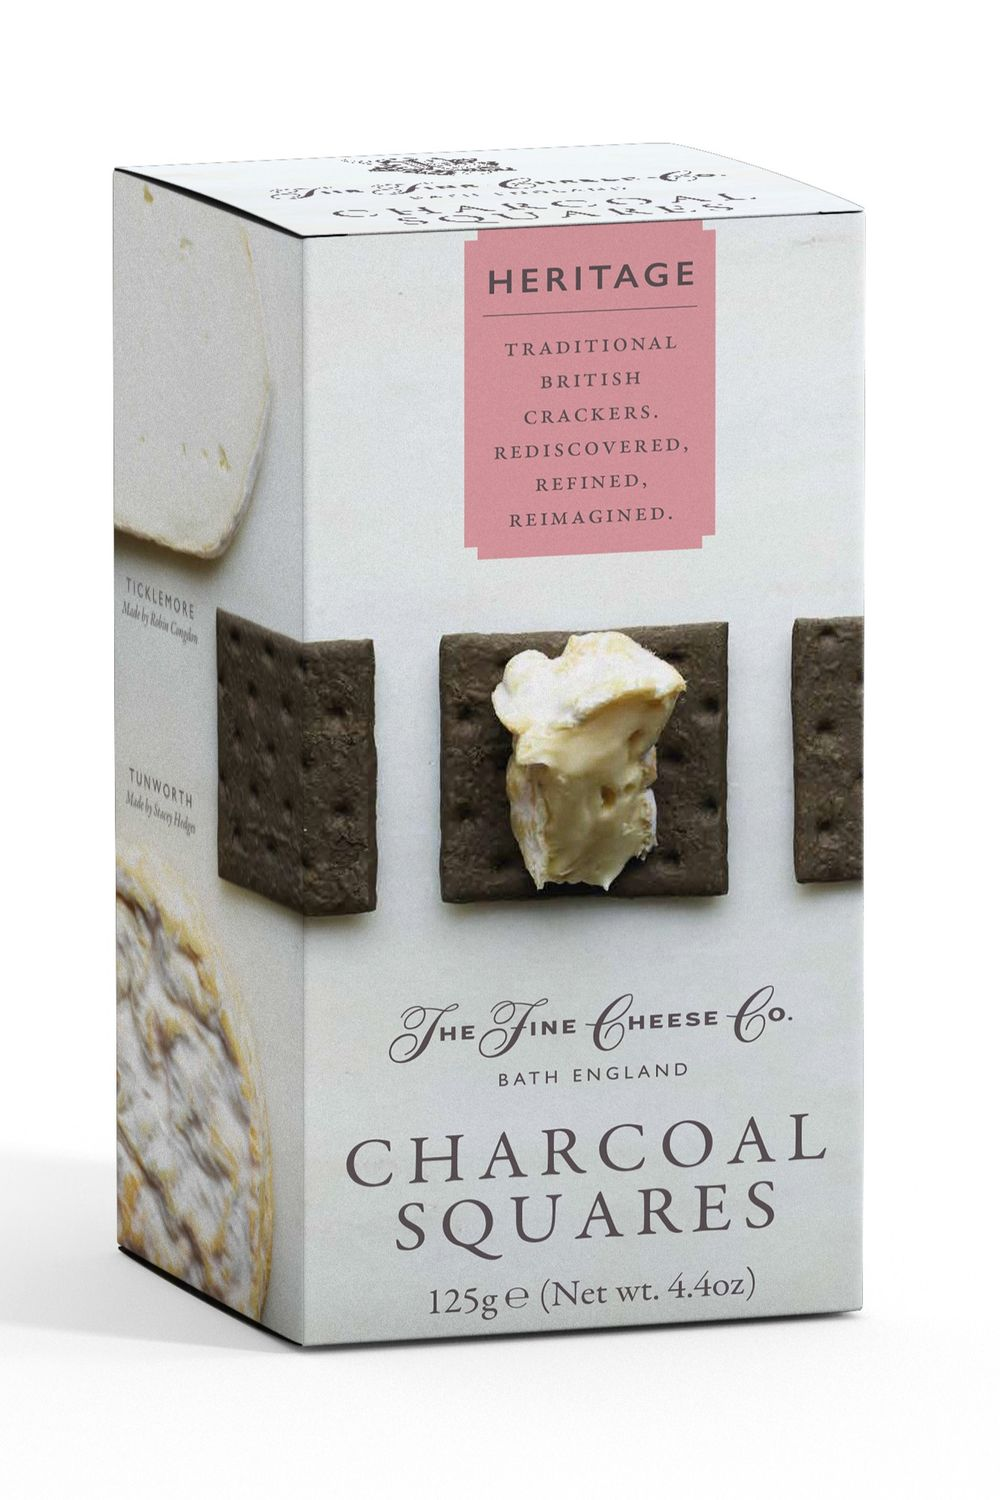 Heritage Charcoal Squares